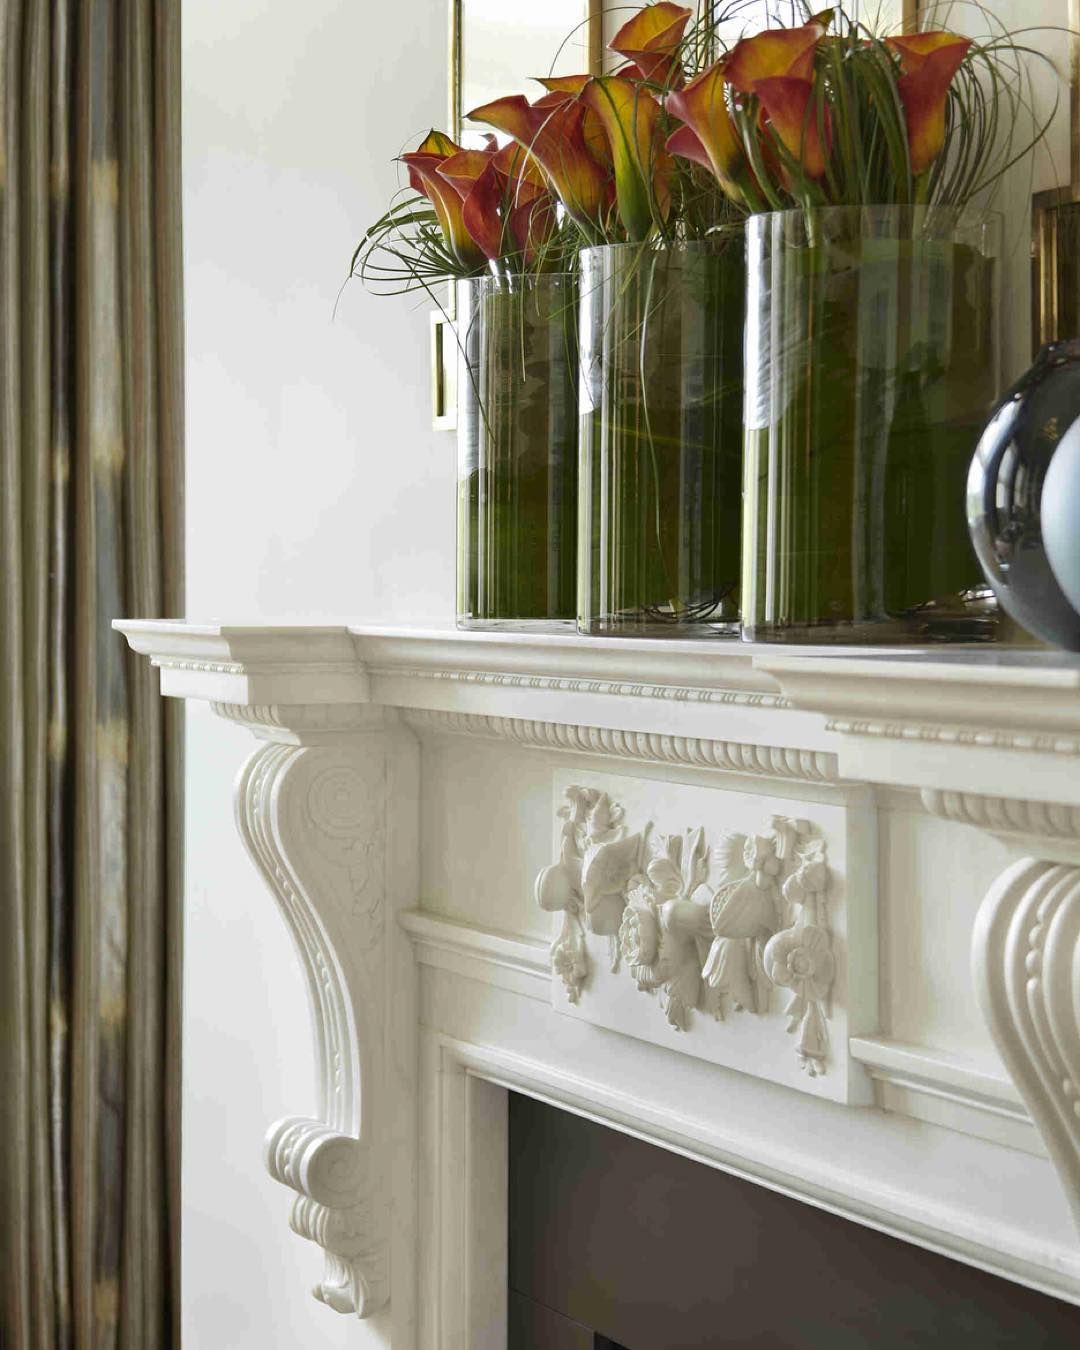 Fresh flowers add a splash of colour to the delicately detailed fireplace in the living room of our Hyde Park project #architecture #plasterwork #mouldings #details #fireplace #living #snug #livingroom #homedecor #flowers #floral #accessories #homedressing #colourlondon #instastyle #inspiration #homedecor #decor #luxuryhomes #luxury #instastyle #residential #style #interior123 #katharinepooleyltd